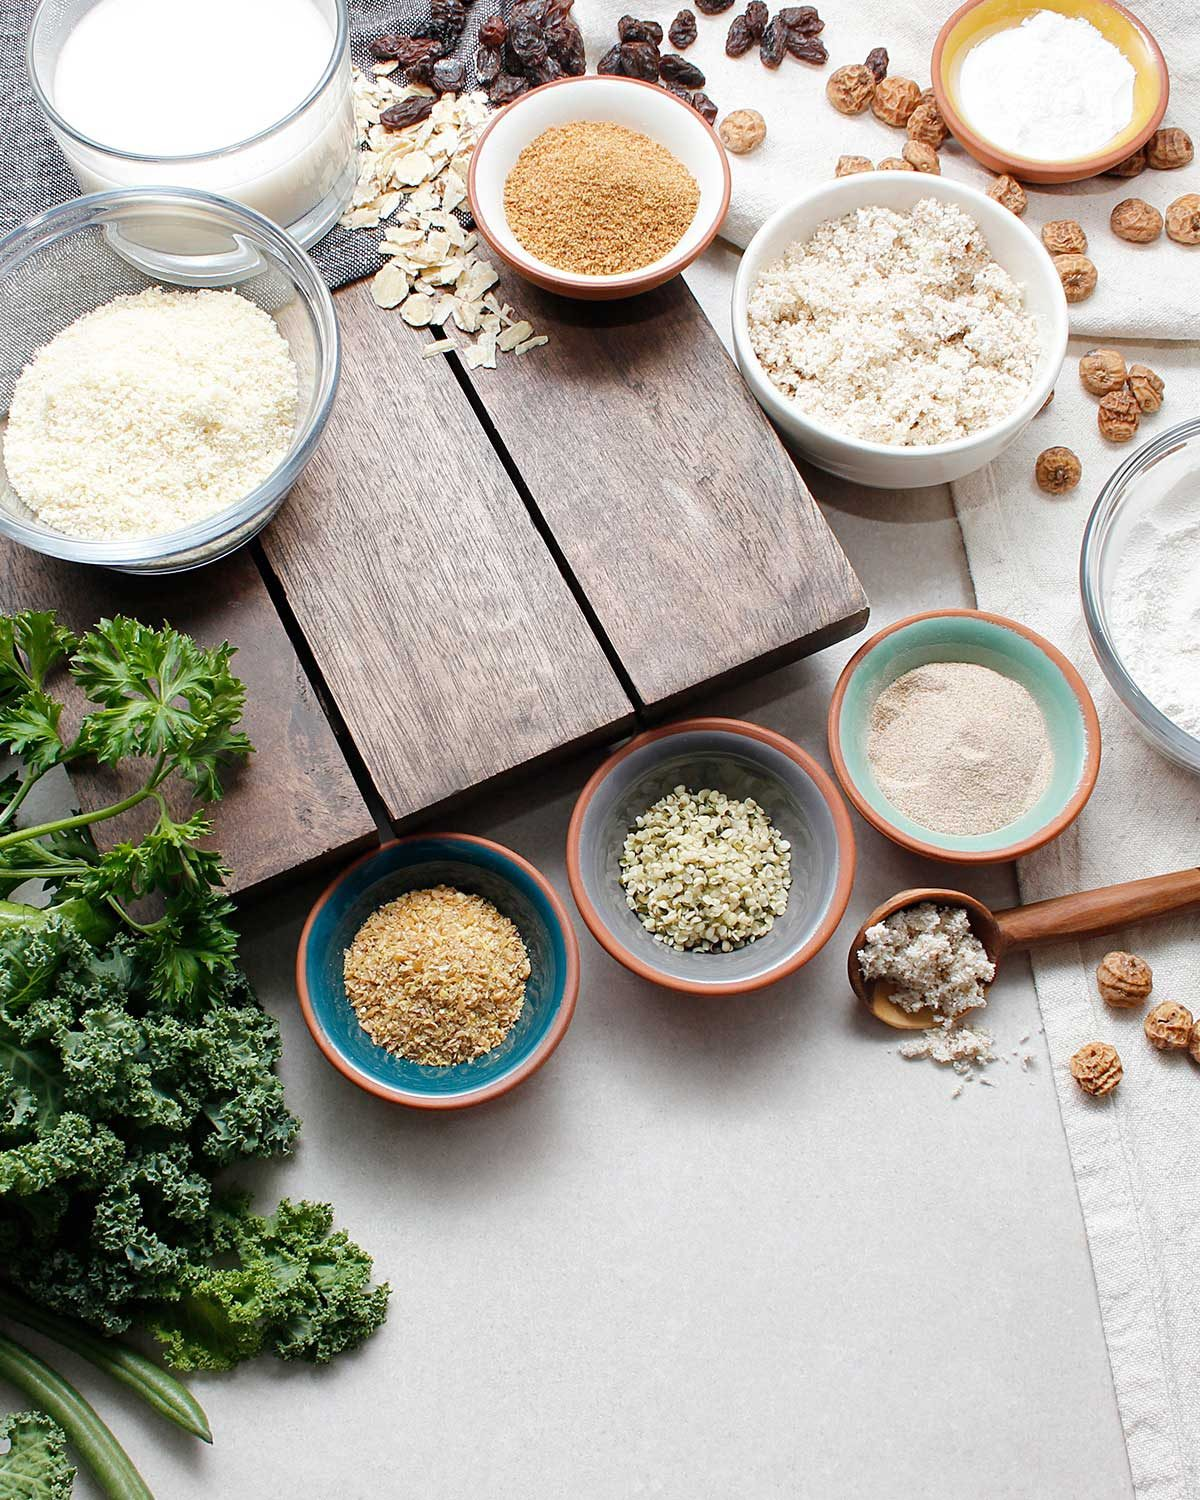 Grain-free ingredients in small bowls including some fresh greens.